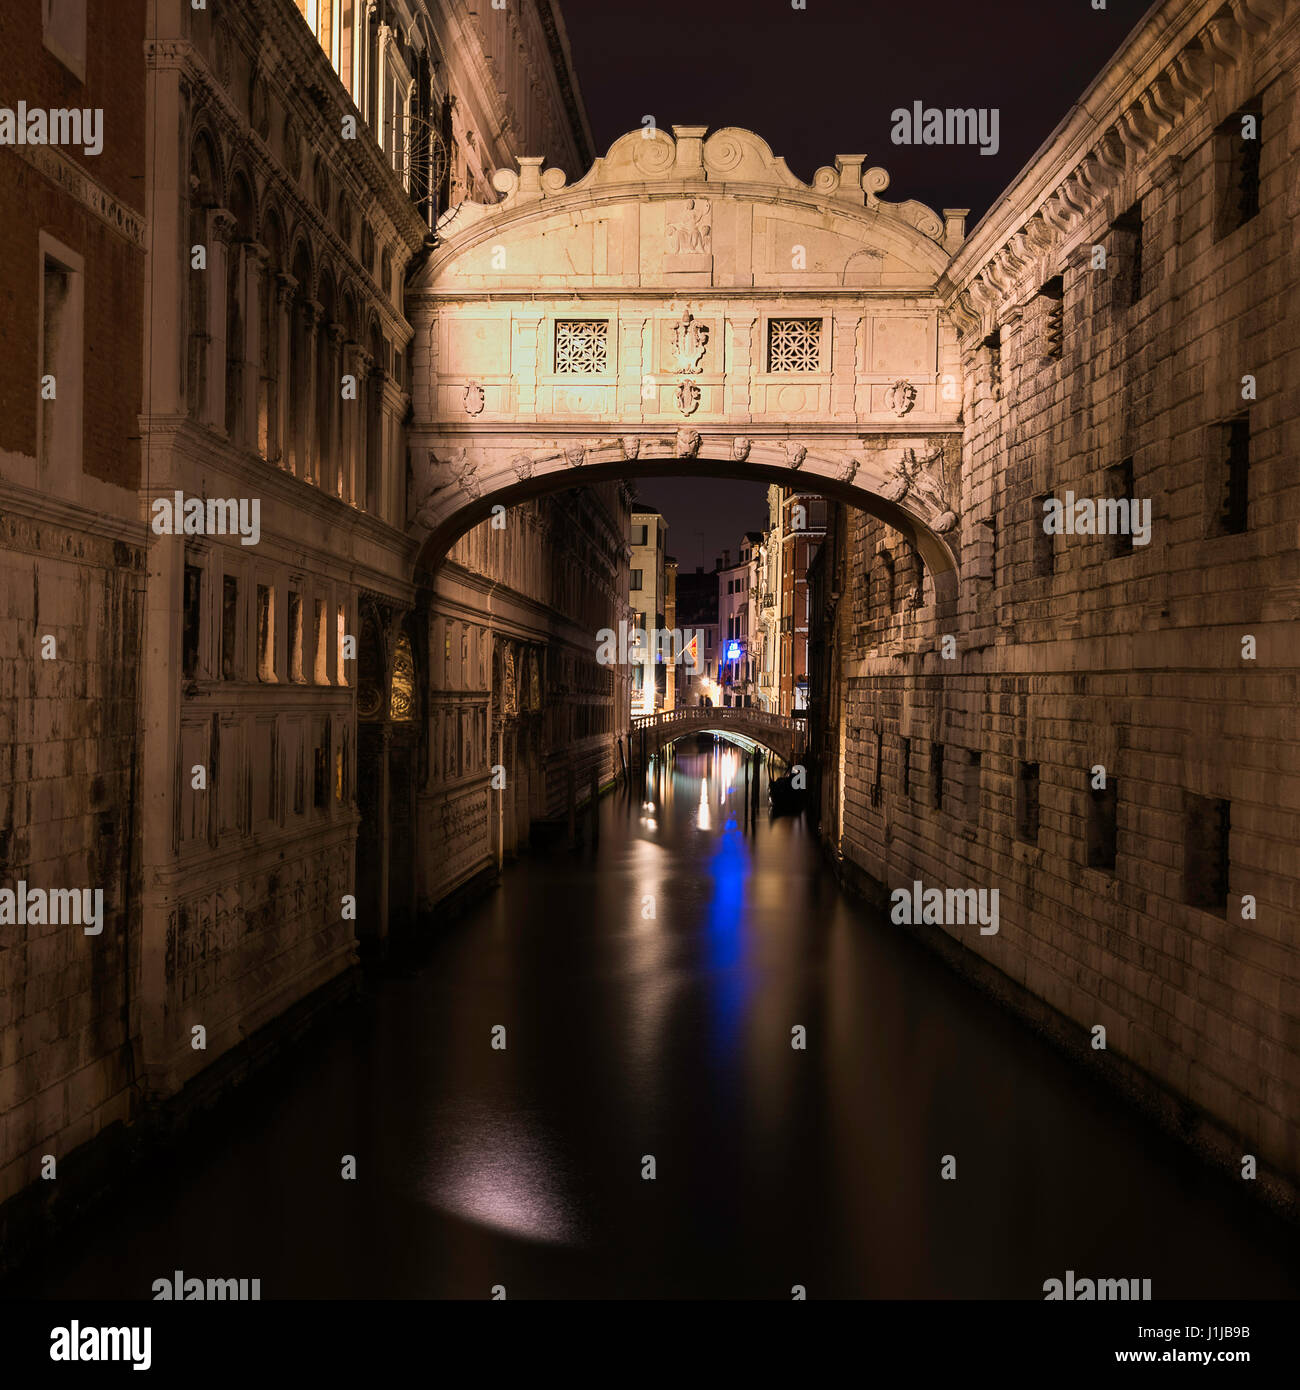 Long exposure night images of the Bridge of Sighs over the Rio di Palazzo Venice Italy - Stock Image